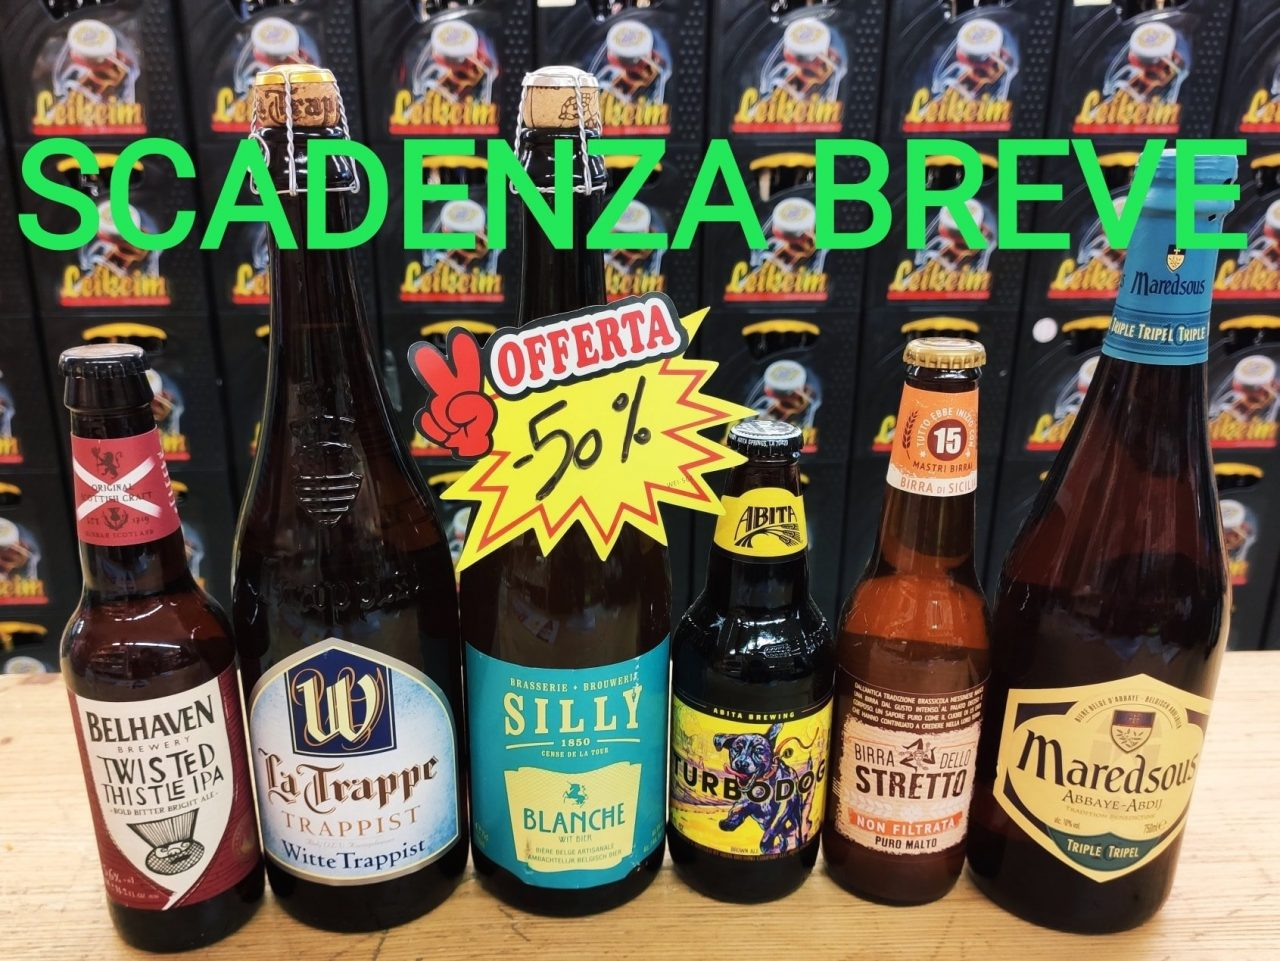 https://www.abbaziadellabirra.it/wp-content/uploads/90717568_1093835534302986_5930083365884526592_o-1280x961.jpg